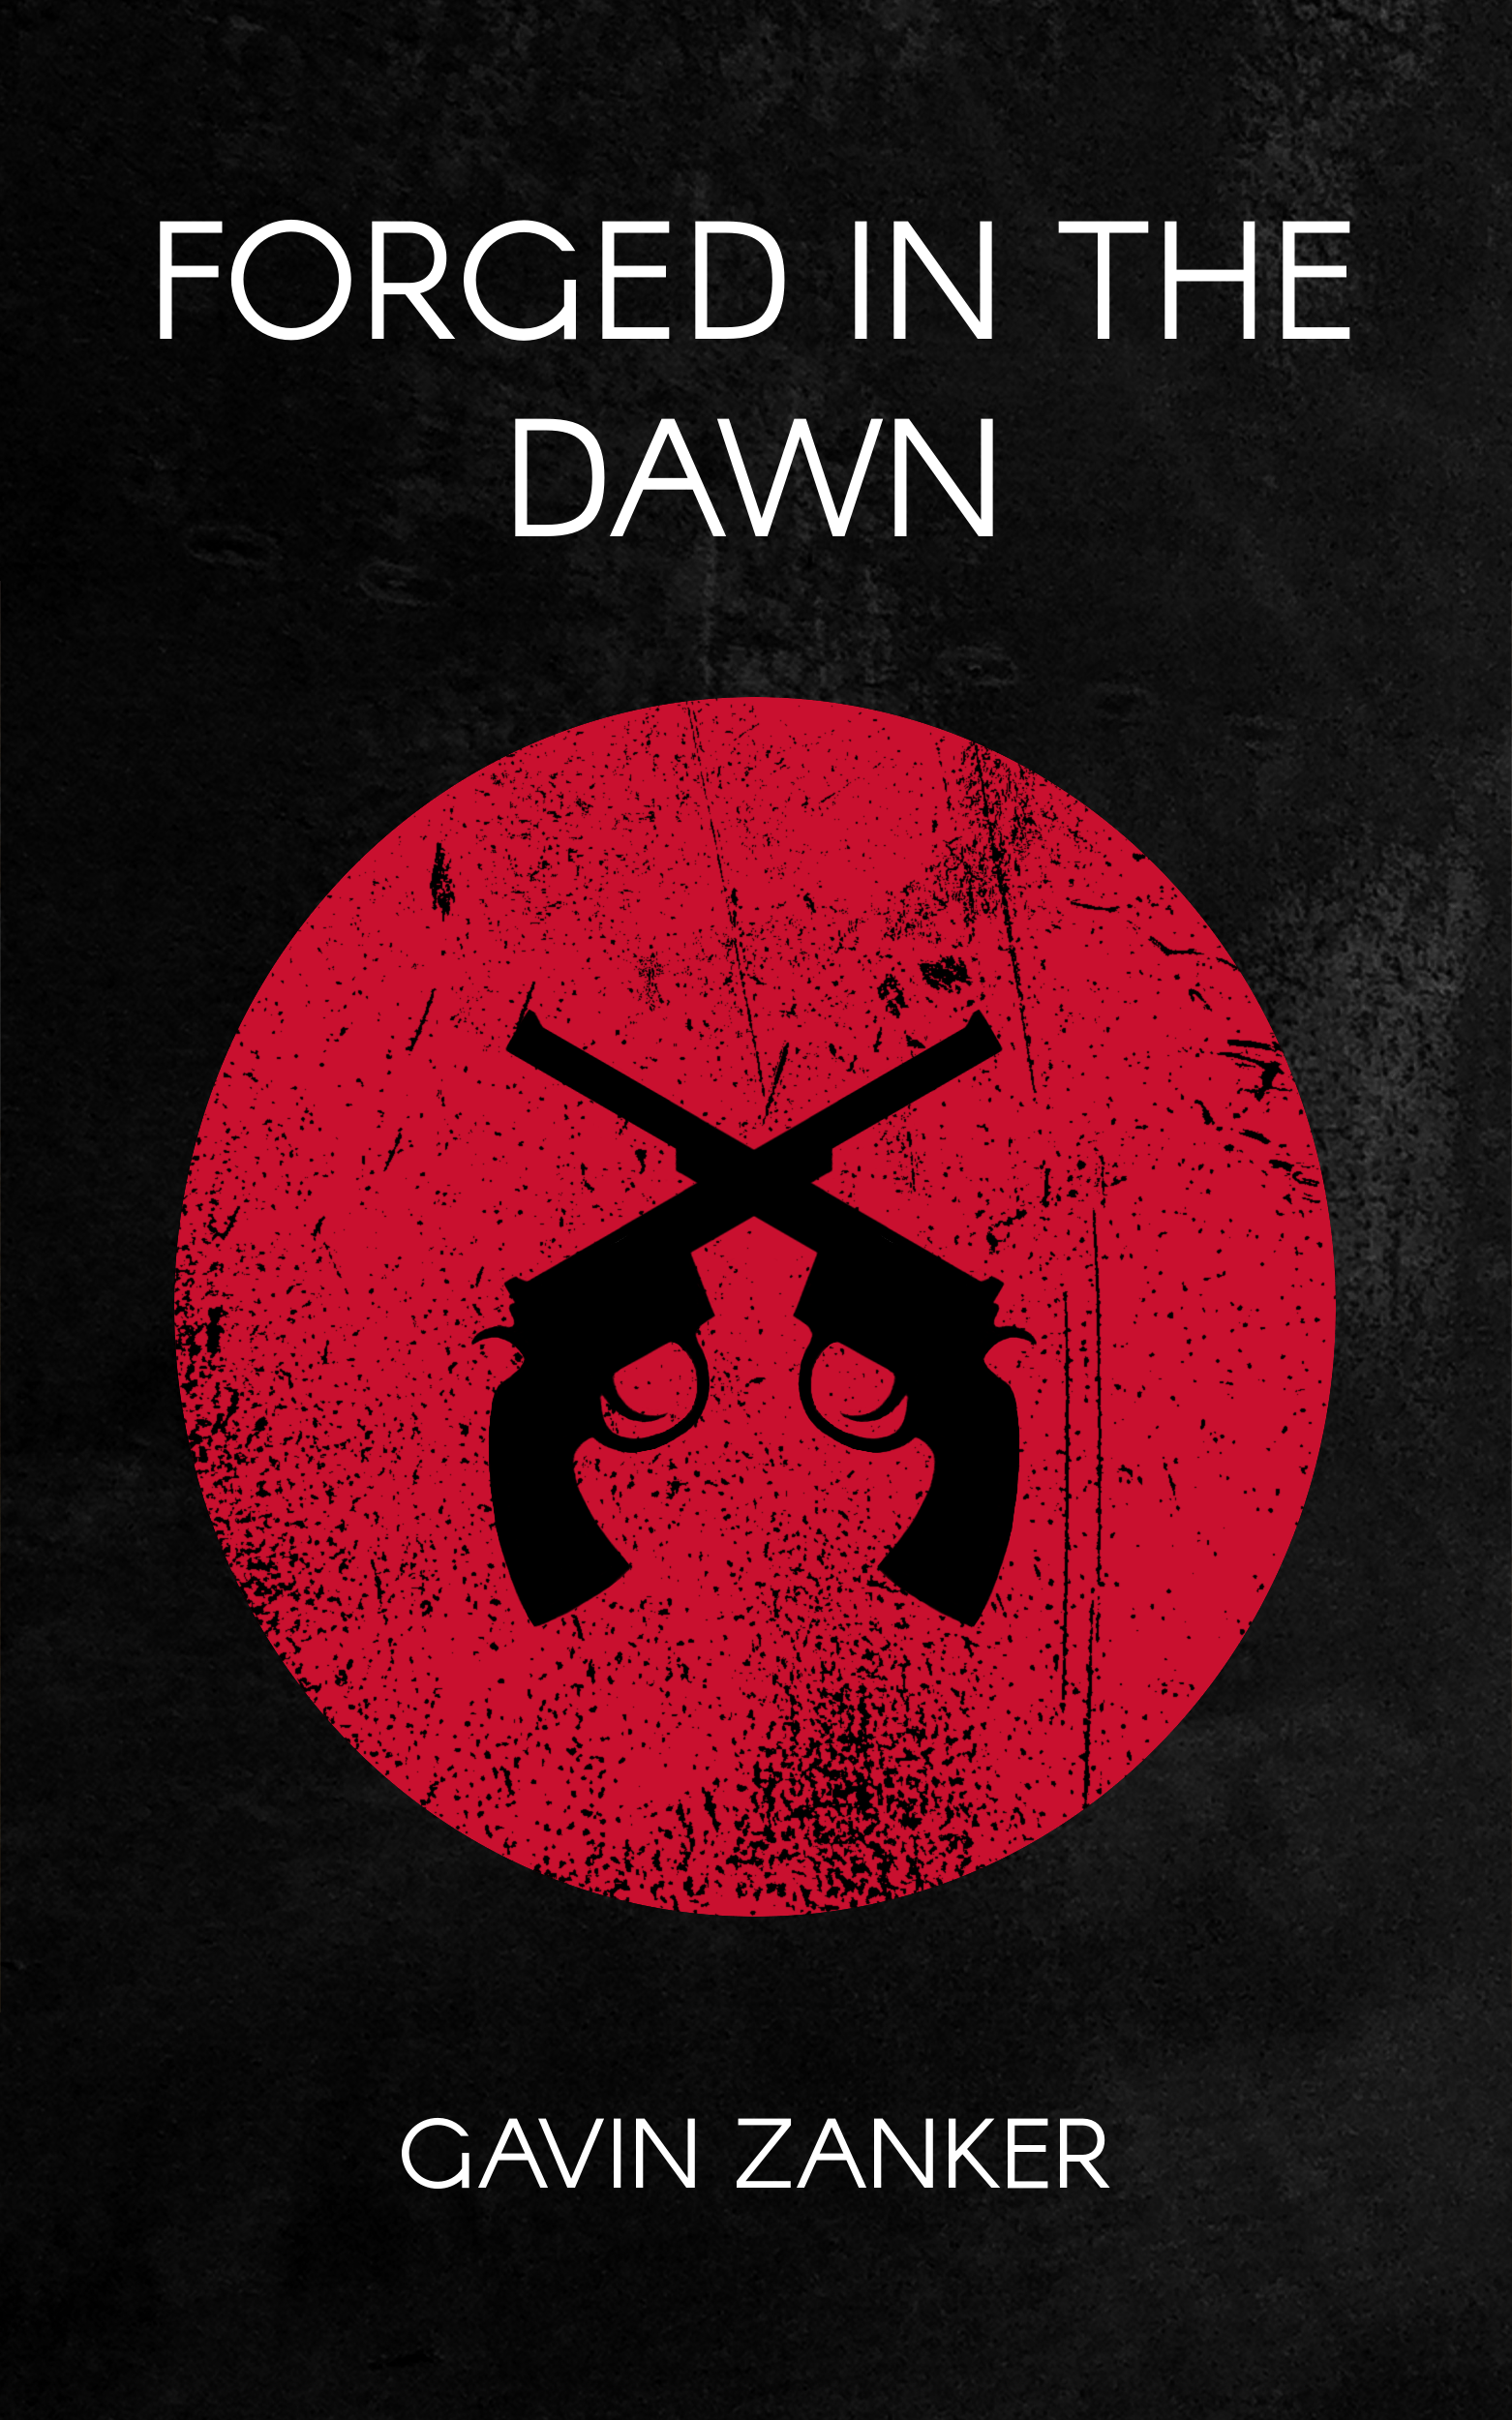 forged_in_the_dawn_cover_1562_2500